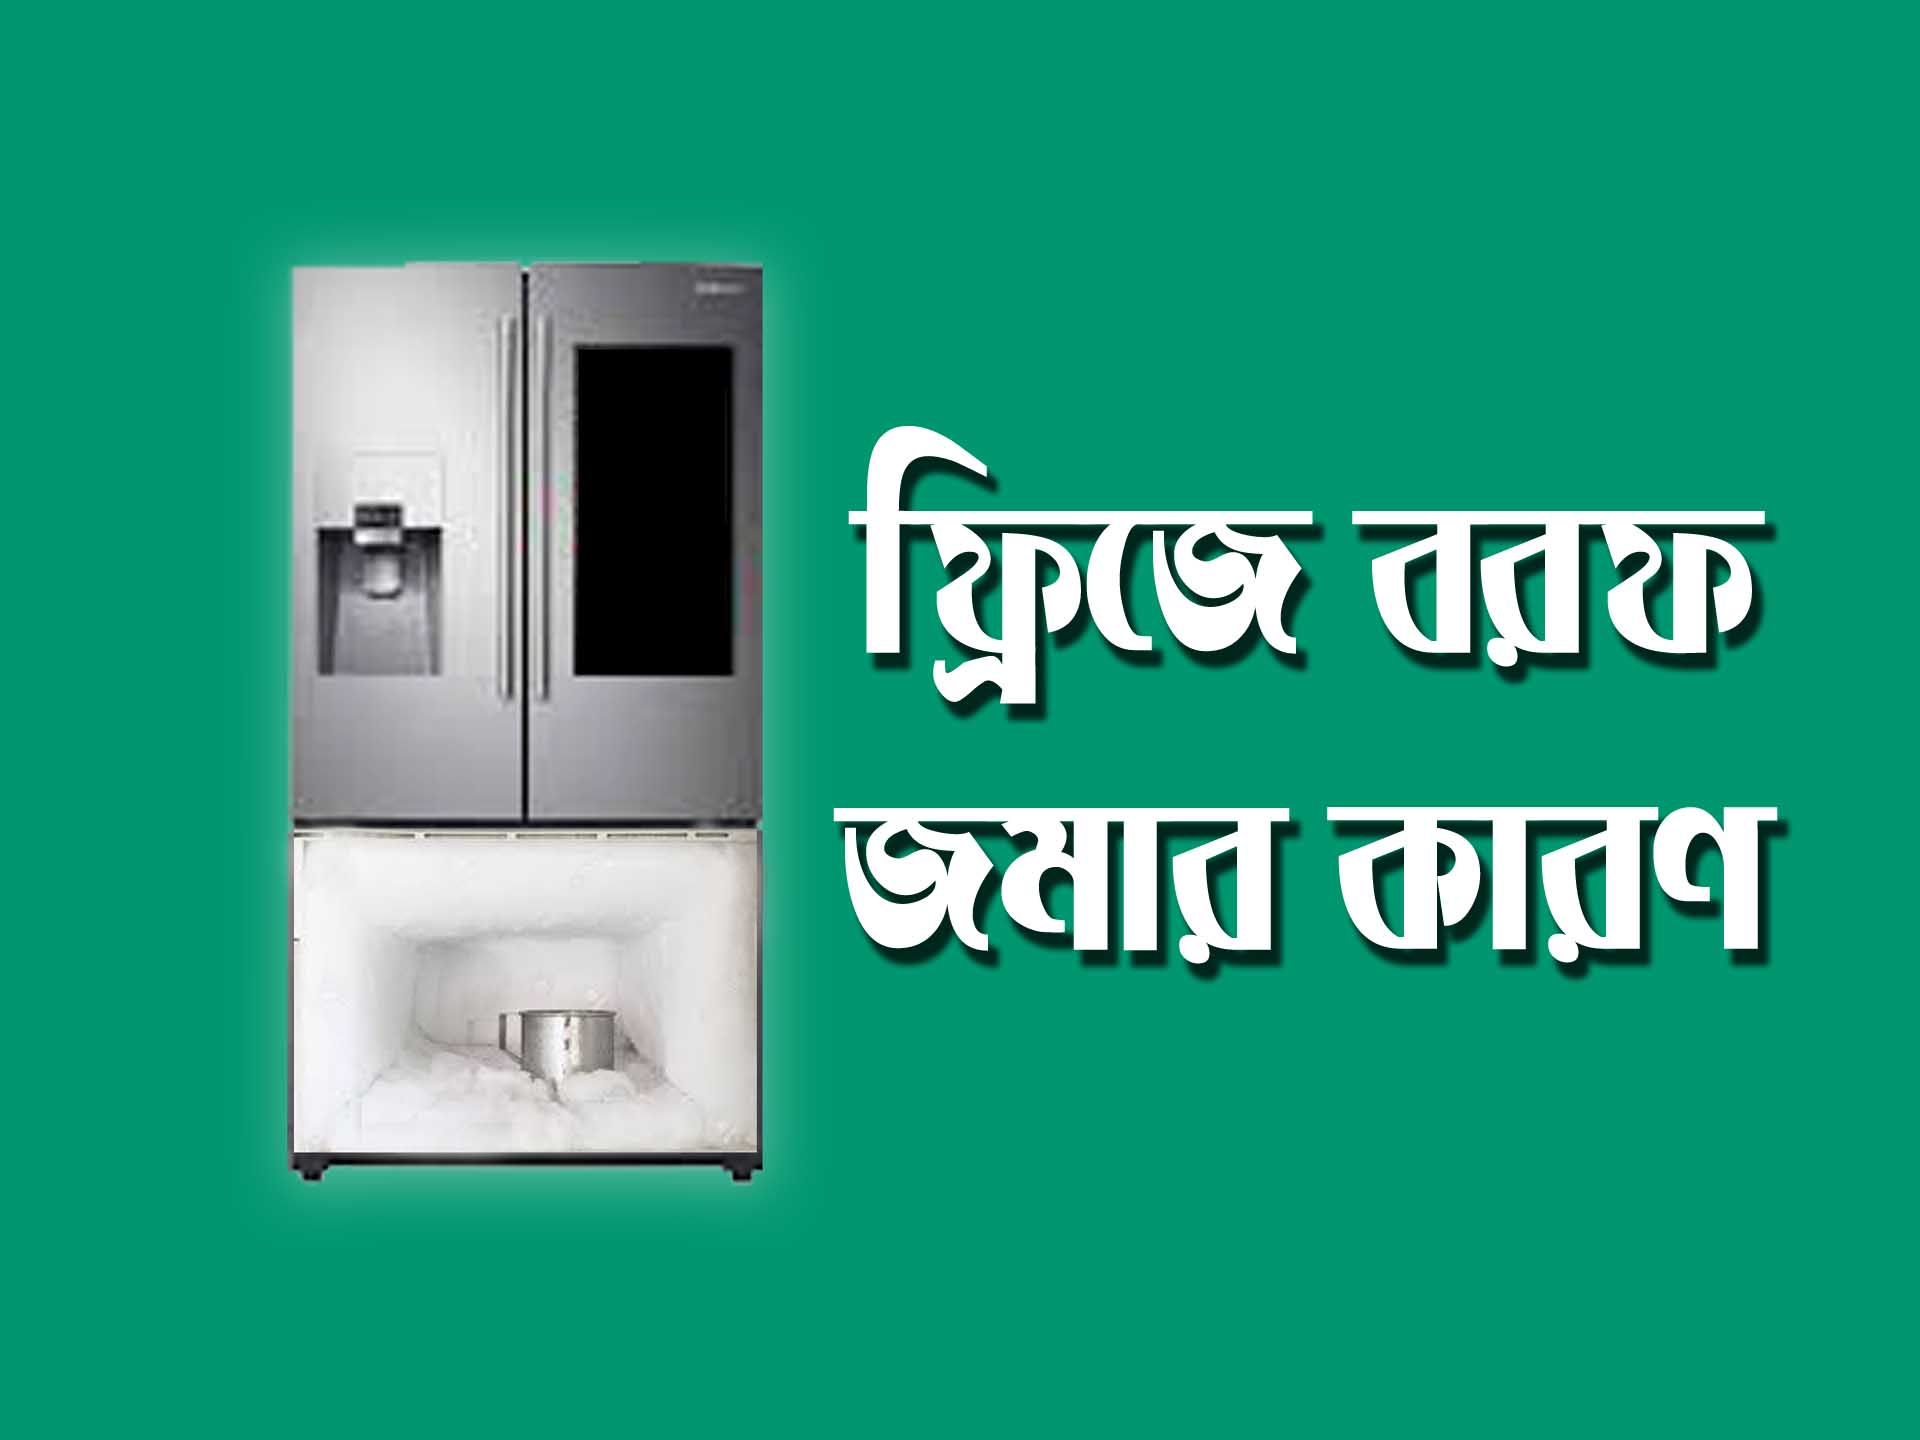 Refrigerator ice freezing problems-ফ্রিজে বরফ জমার কারণ